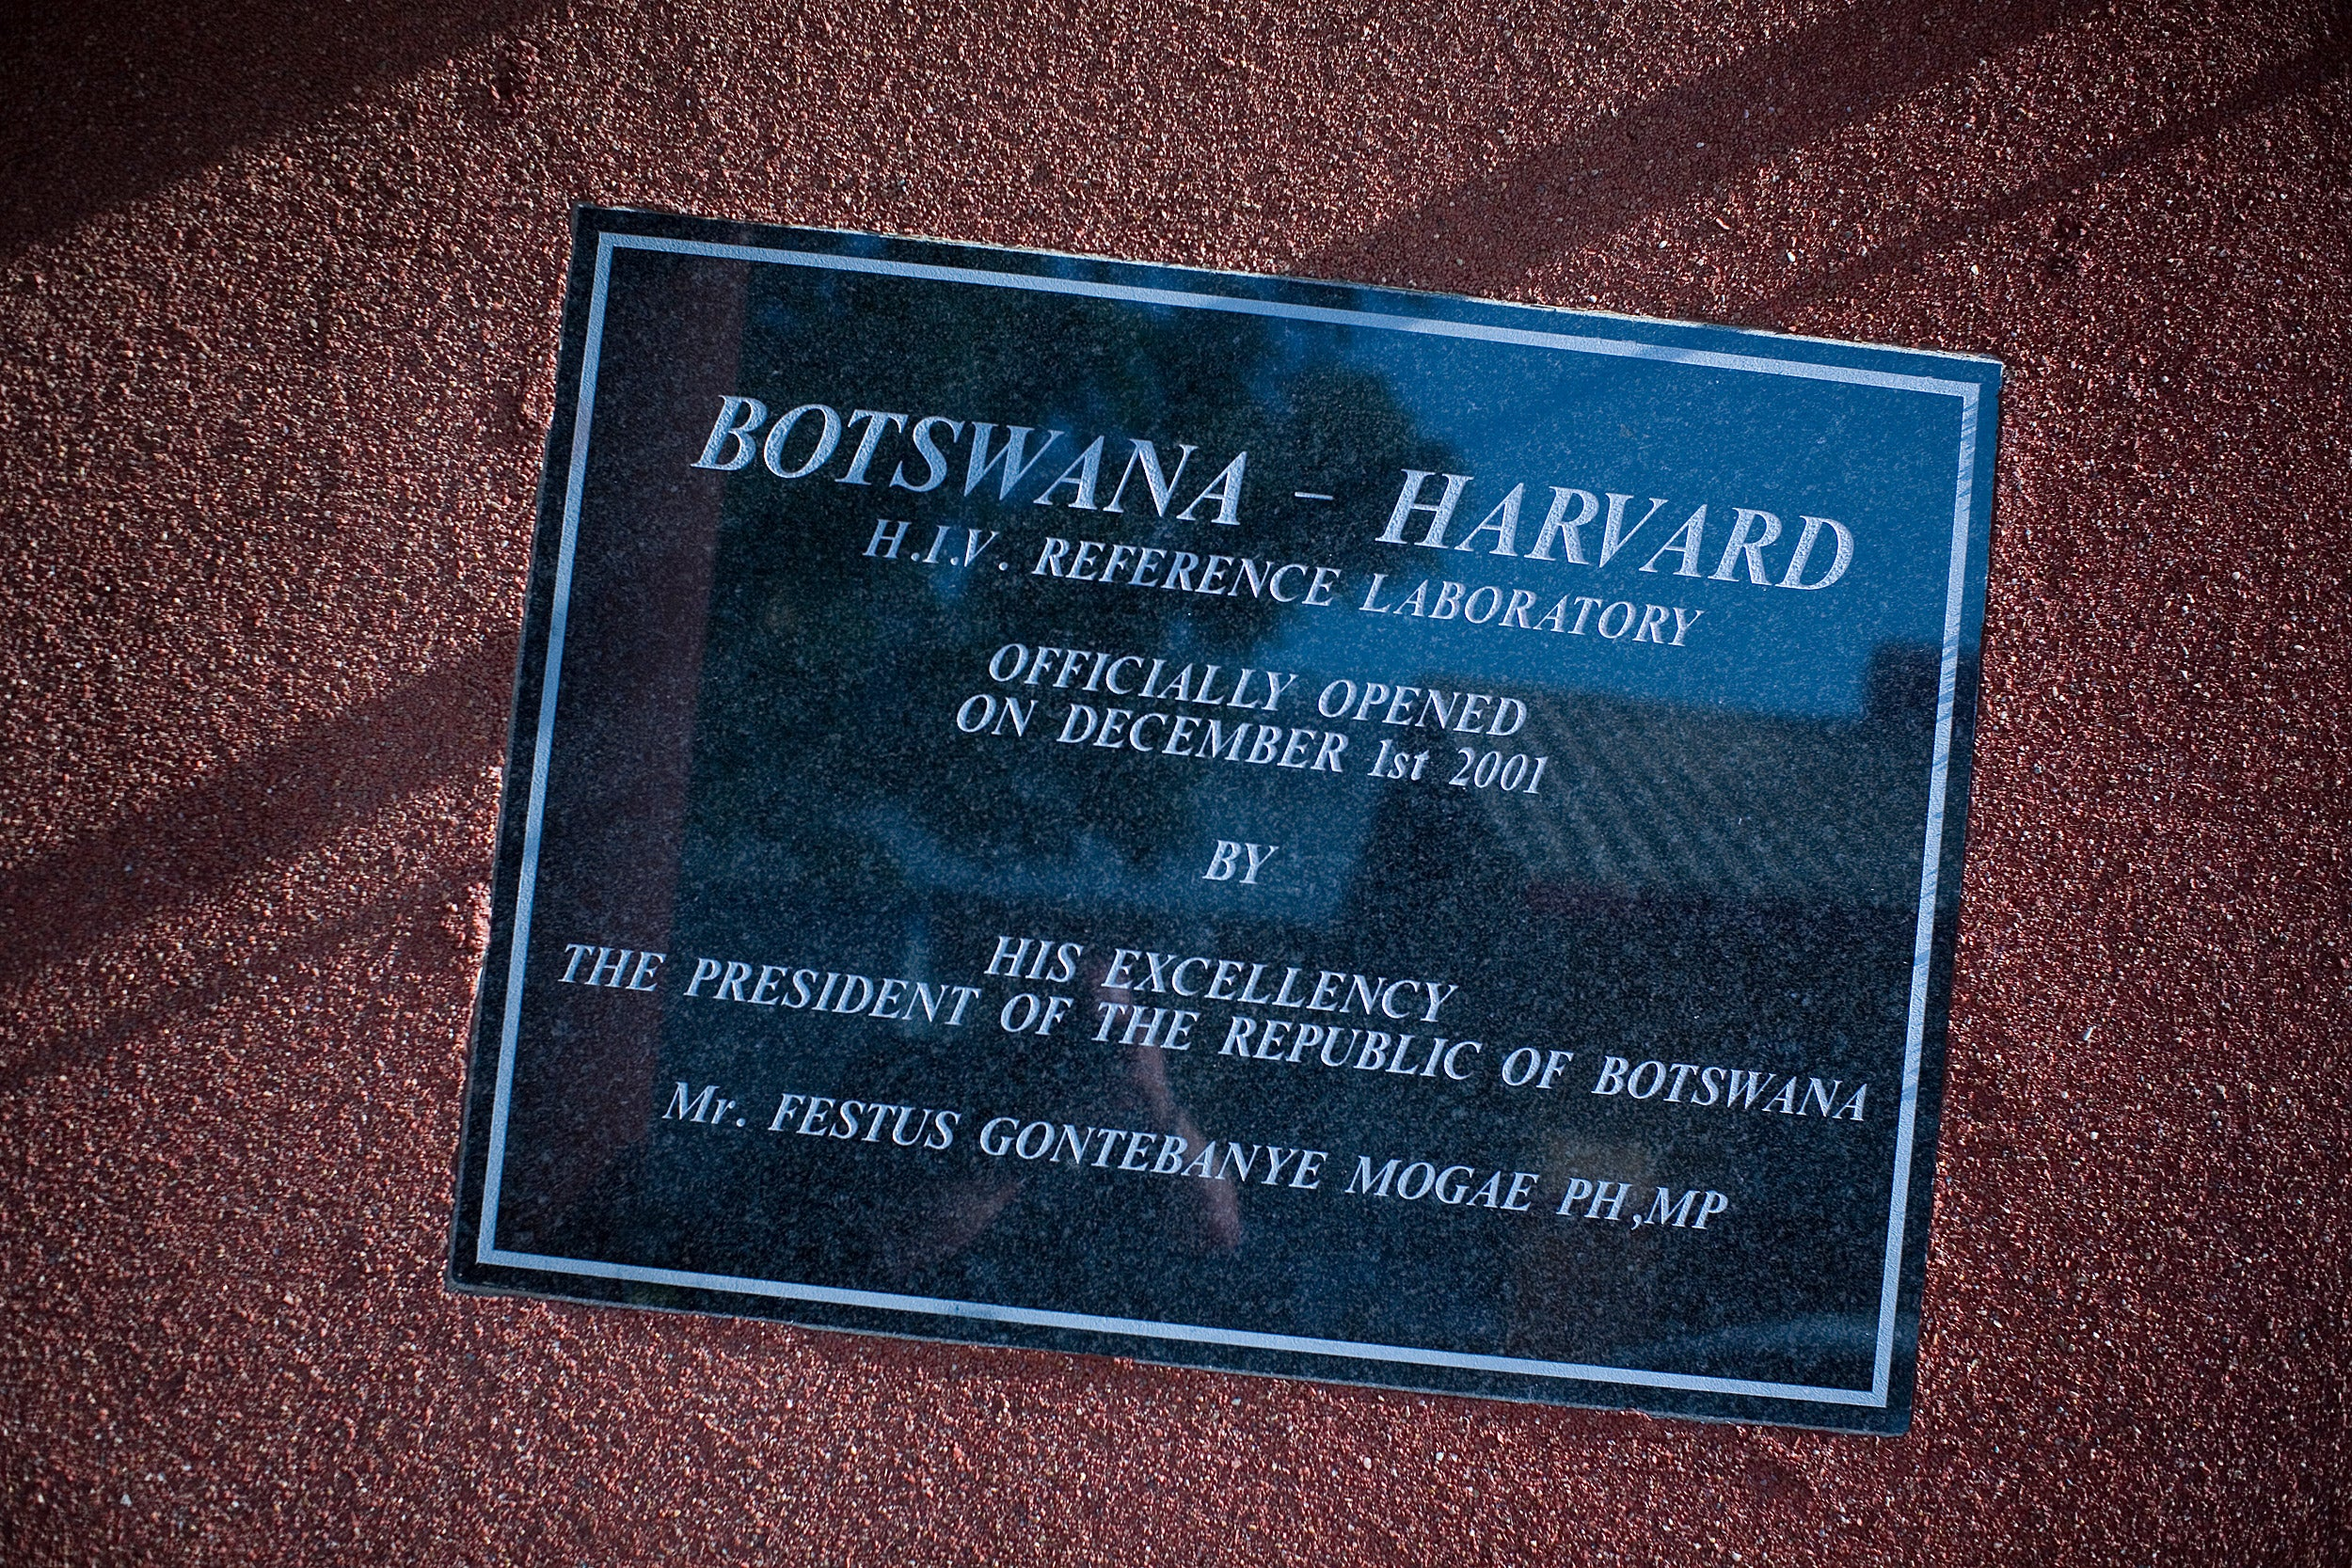 Plaque dedicating Botswana-Harvard HIV Reference Laboratory.